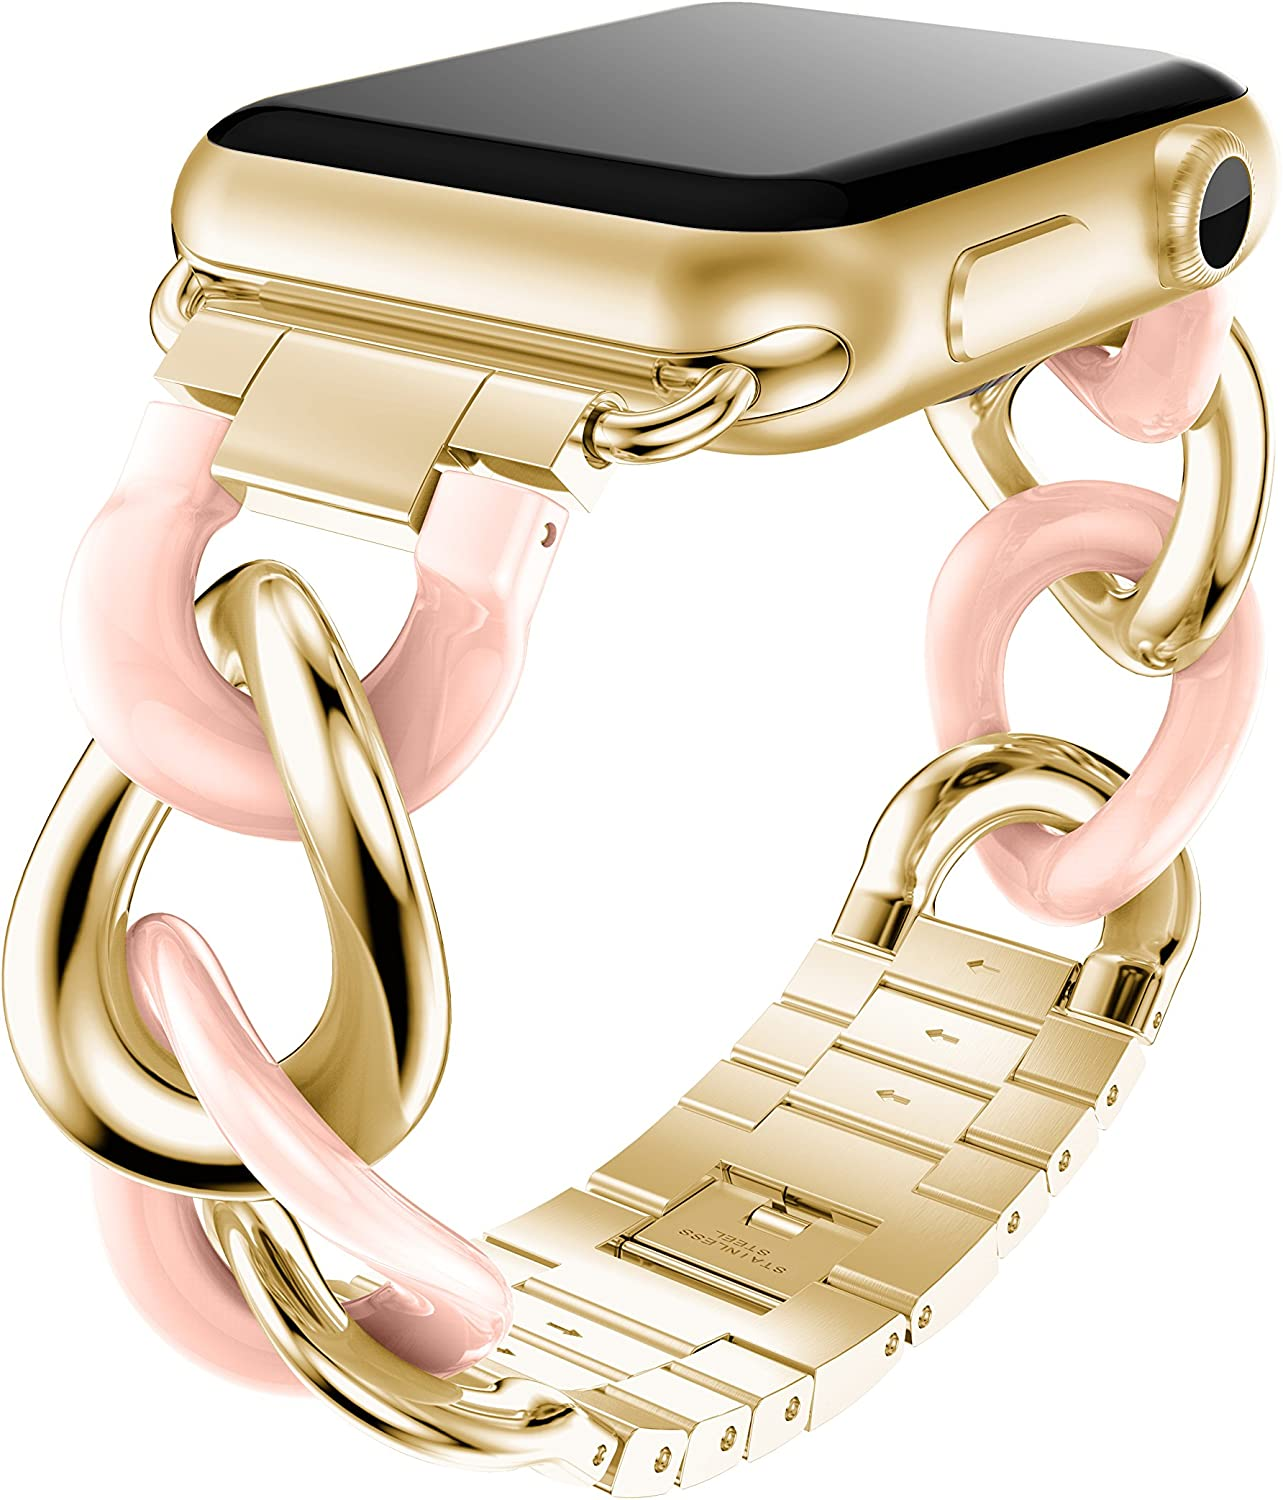 ANCOOL Compatible with Apple Watch Link Bracelet Series 6 Band Women Men, Stainless Steel Metal Link Wristband Replacement for Apple Watch Series 6 5 4 3 2 1